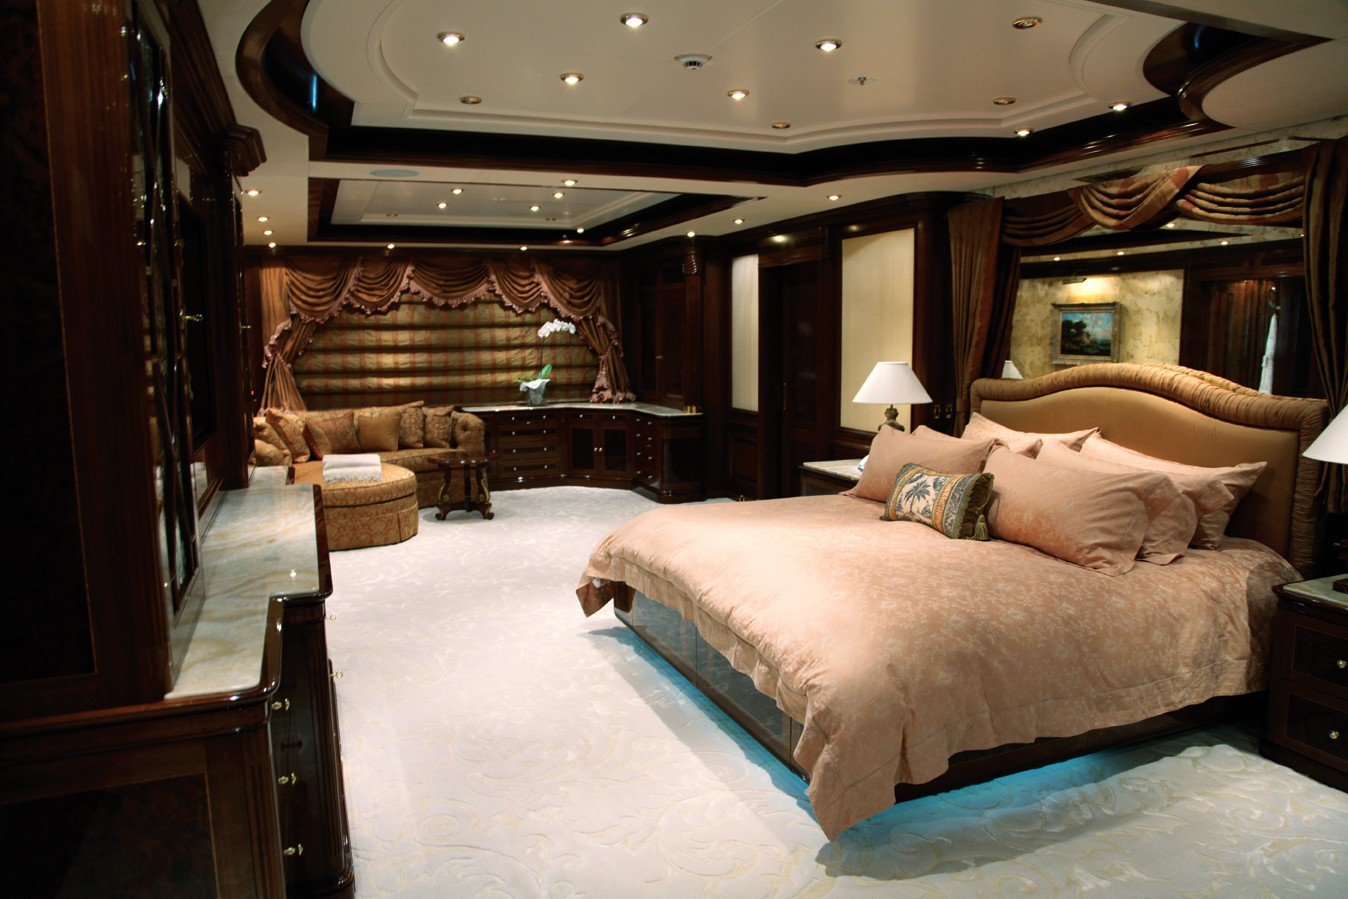 master cabin image gallery luxury yacht browser by 12212 | 5b72m yacht titania 5d 5968 247